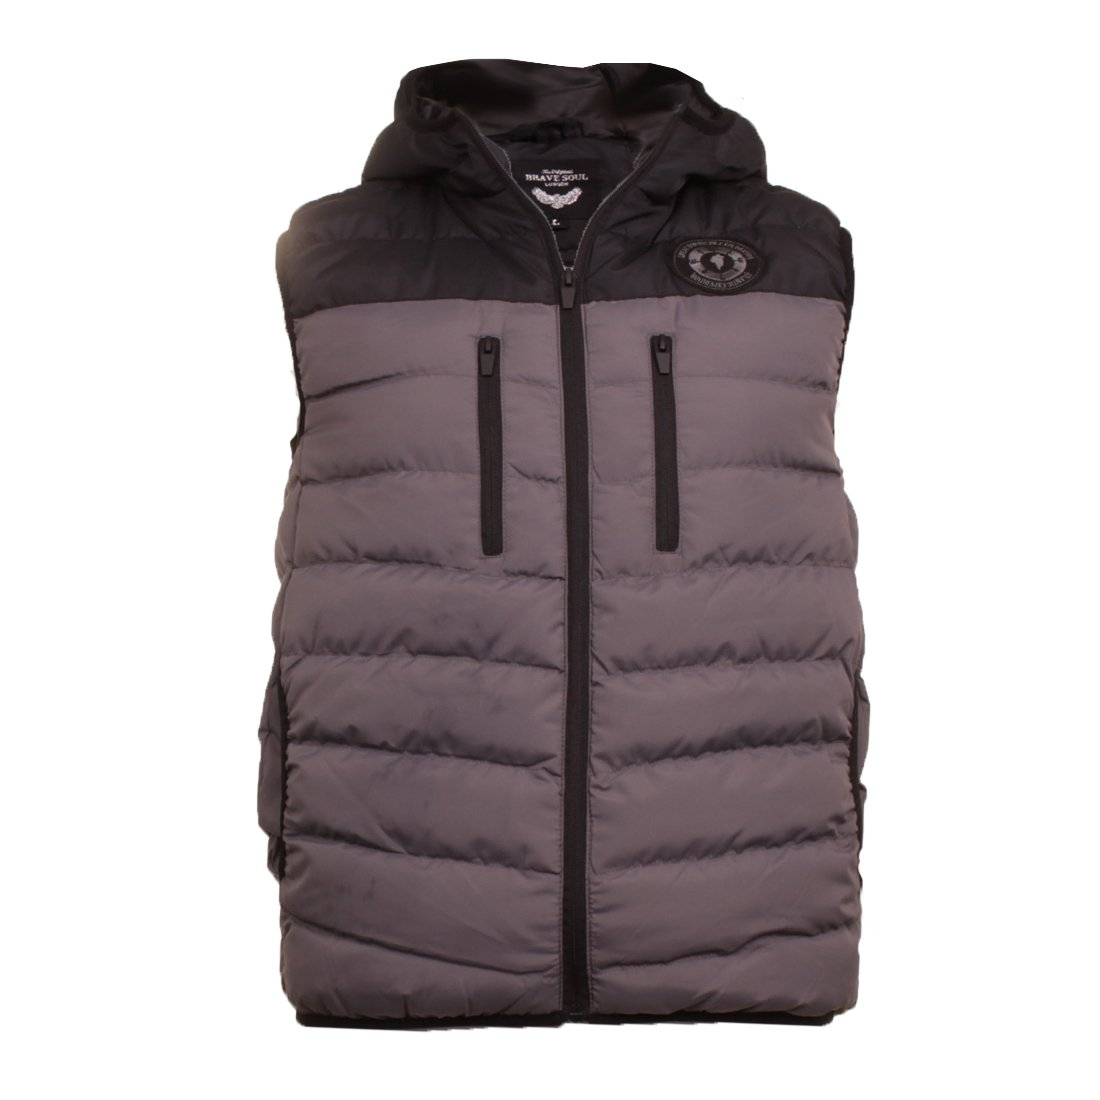 Brave Soul Men's Gillet Blackburn Hugo CHADDERTON Midnight Body Warmer Puffer